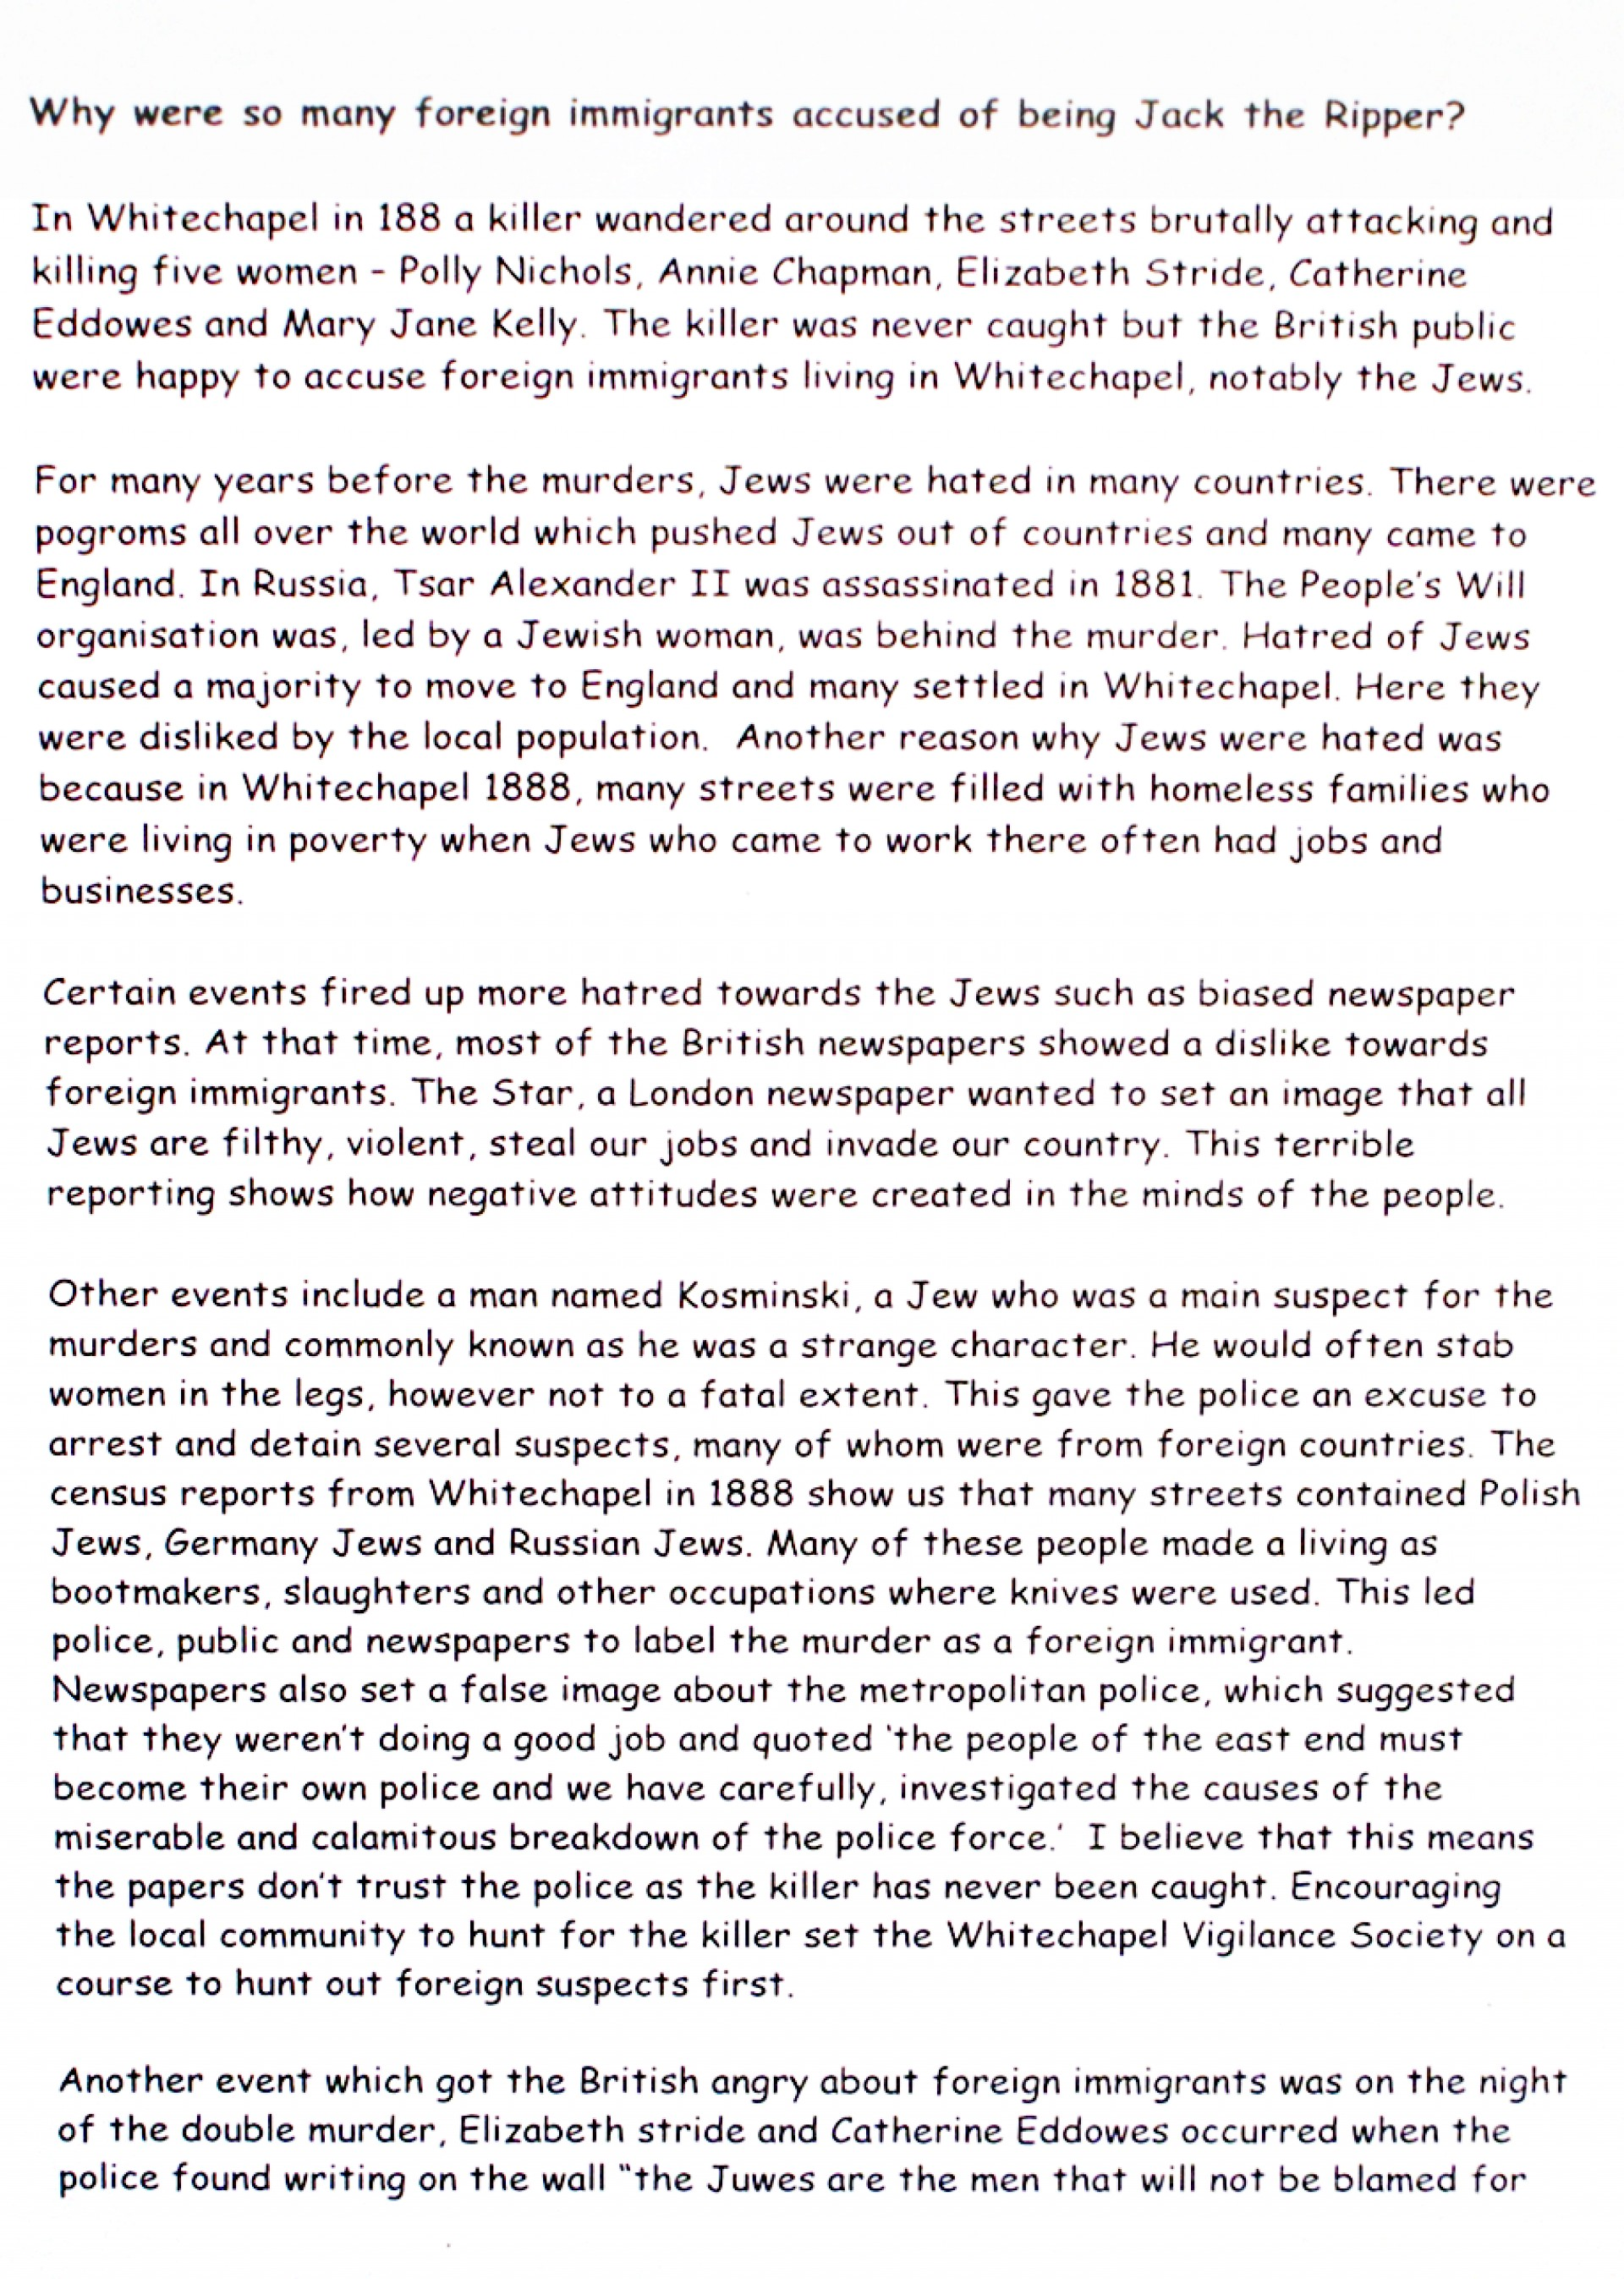 008 History Essay Example History20level207201 120a Tcm8 Beautiful Introduction Pdf A Level 1920